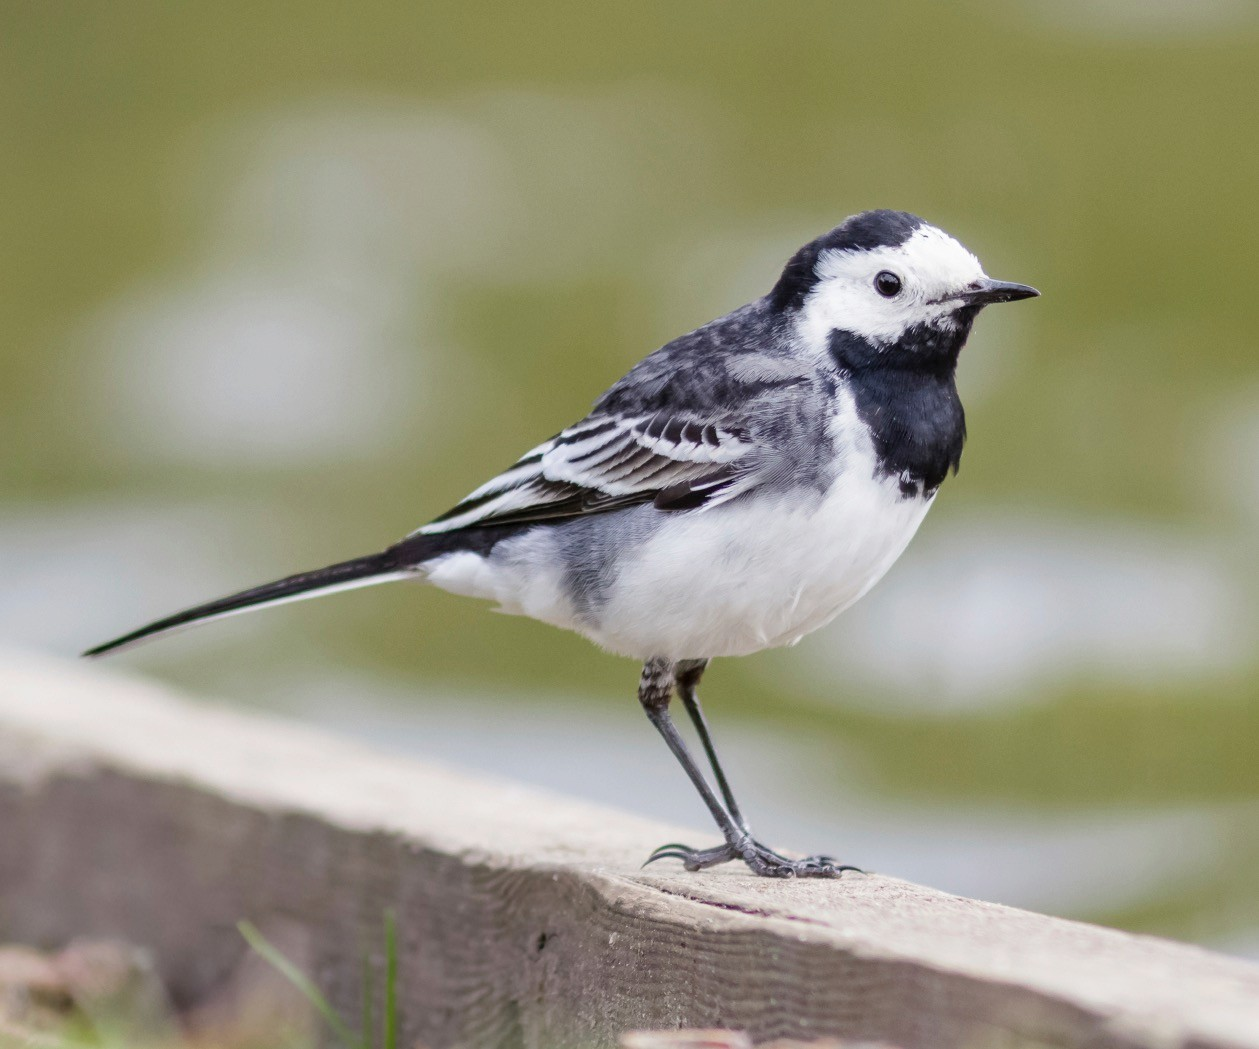 A Pied Wagtail perched on wooden beam by the edge of a lake.